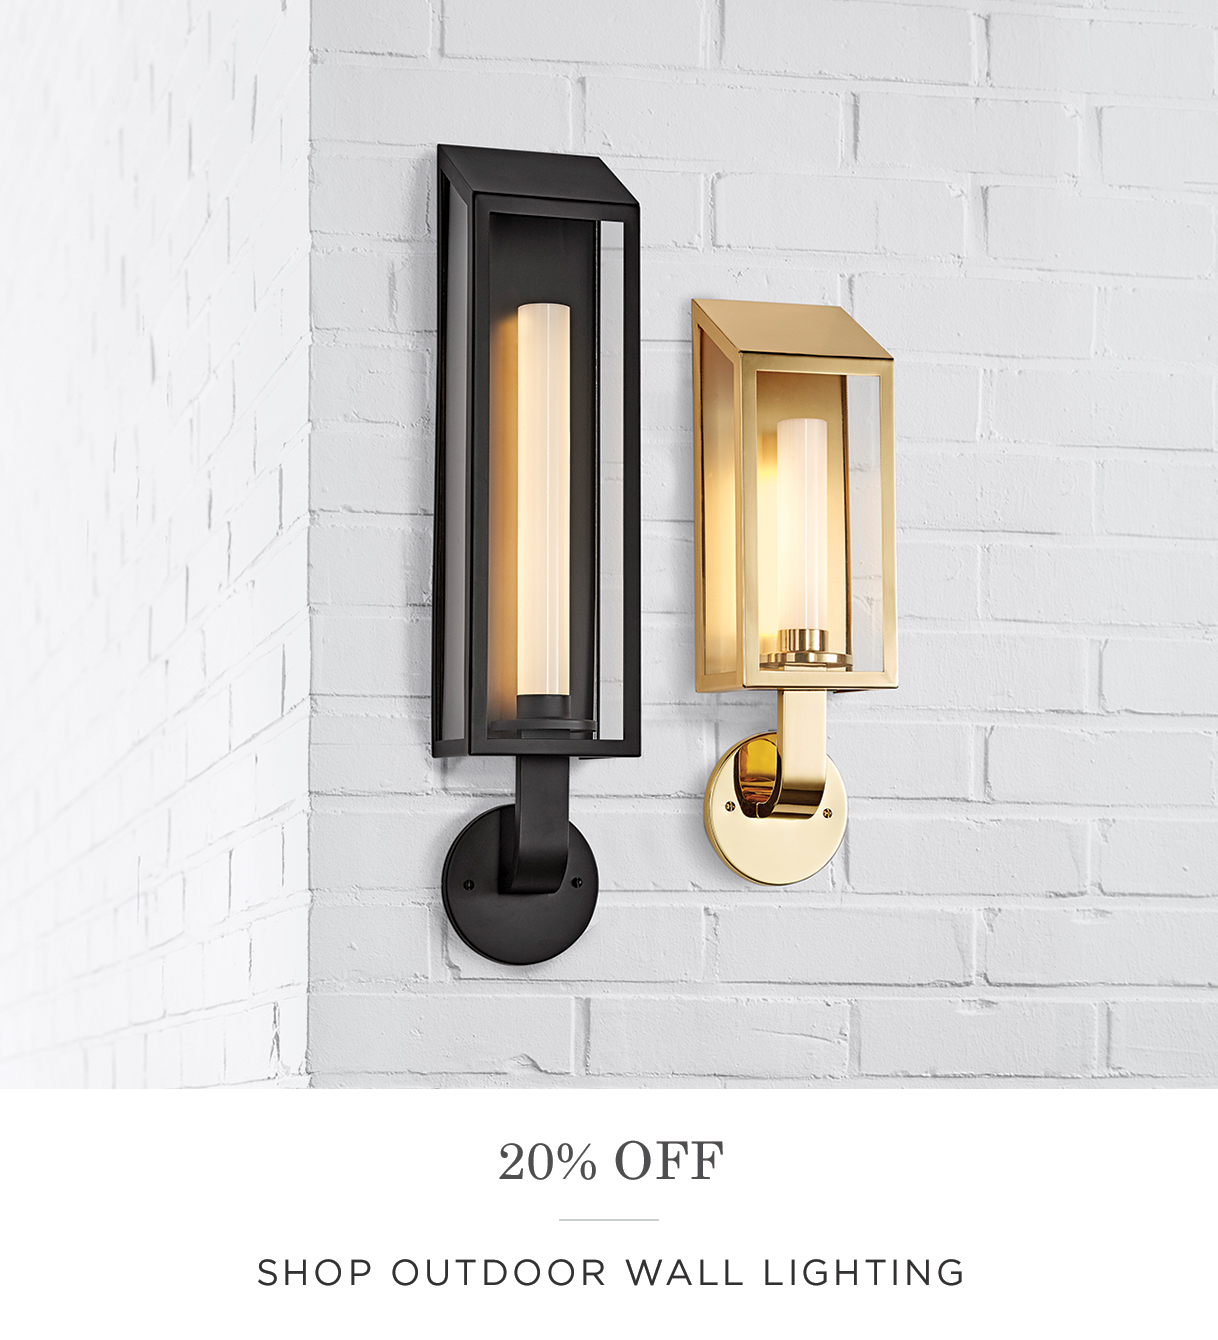 Shop Outdoor Wall Lighting